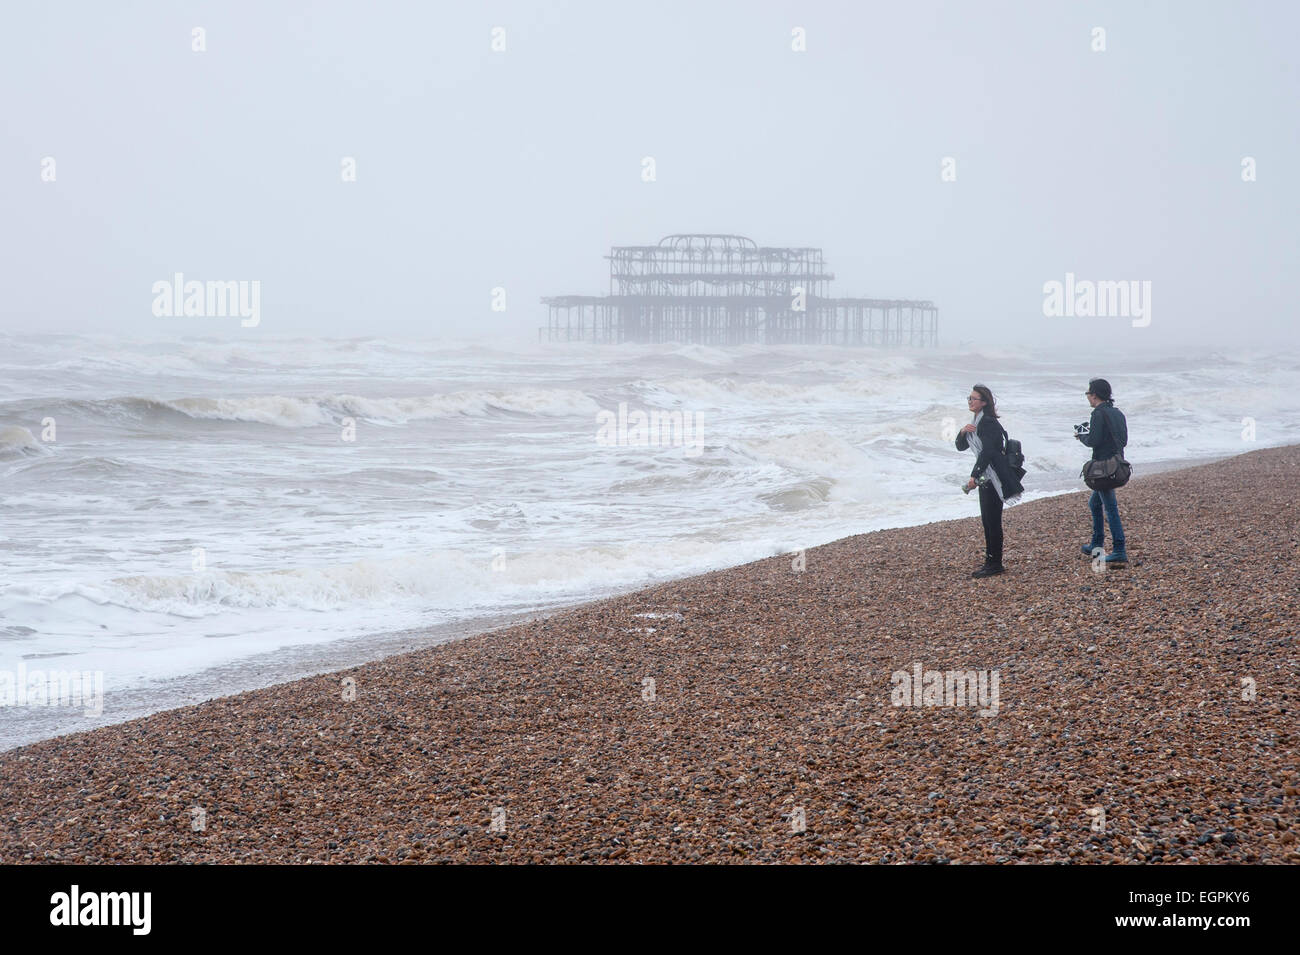 Brighton, Sussex, UK, 28 February 2015.  A pair of tourists brave the elements on the pebble beach as heavy rain - Stock Image